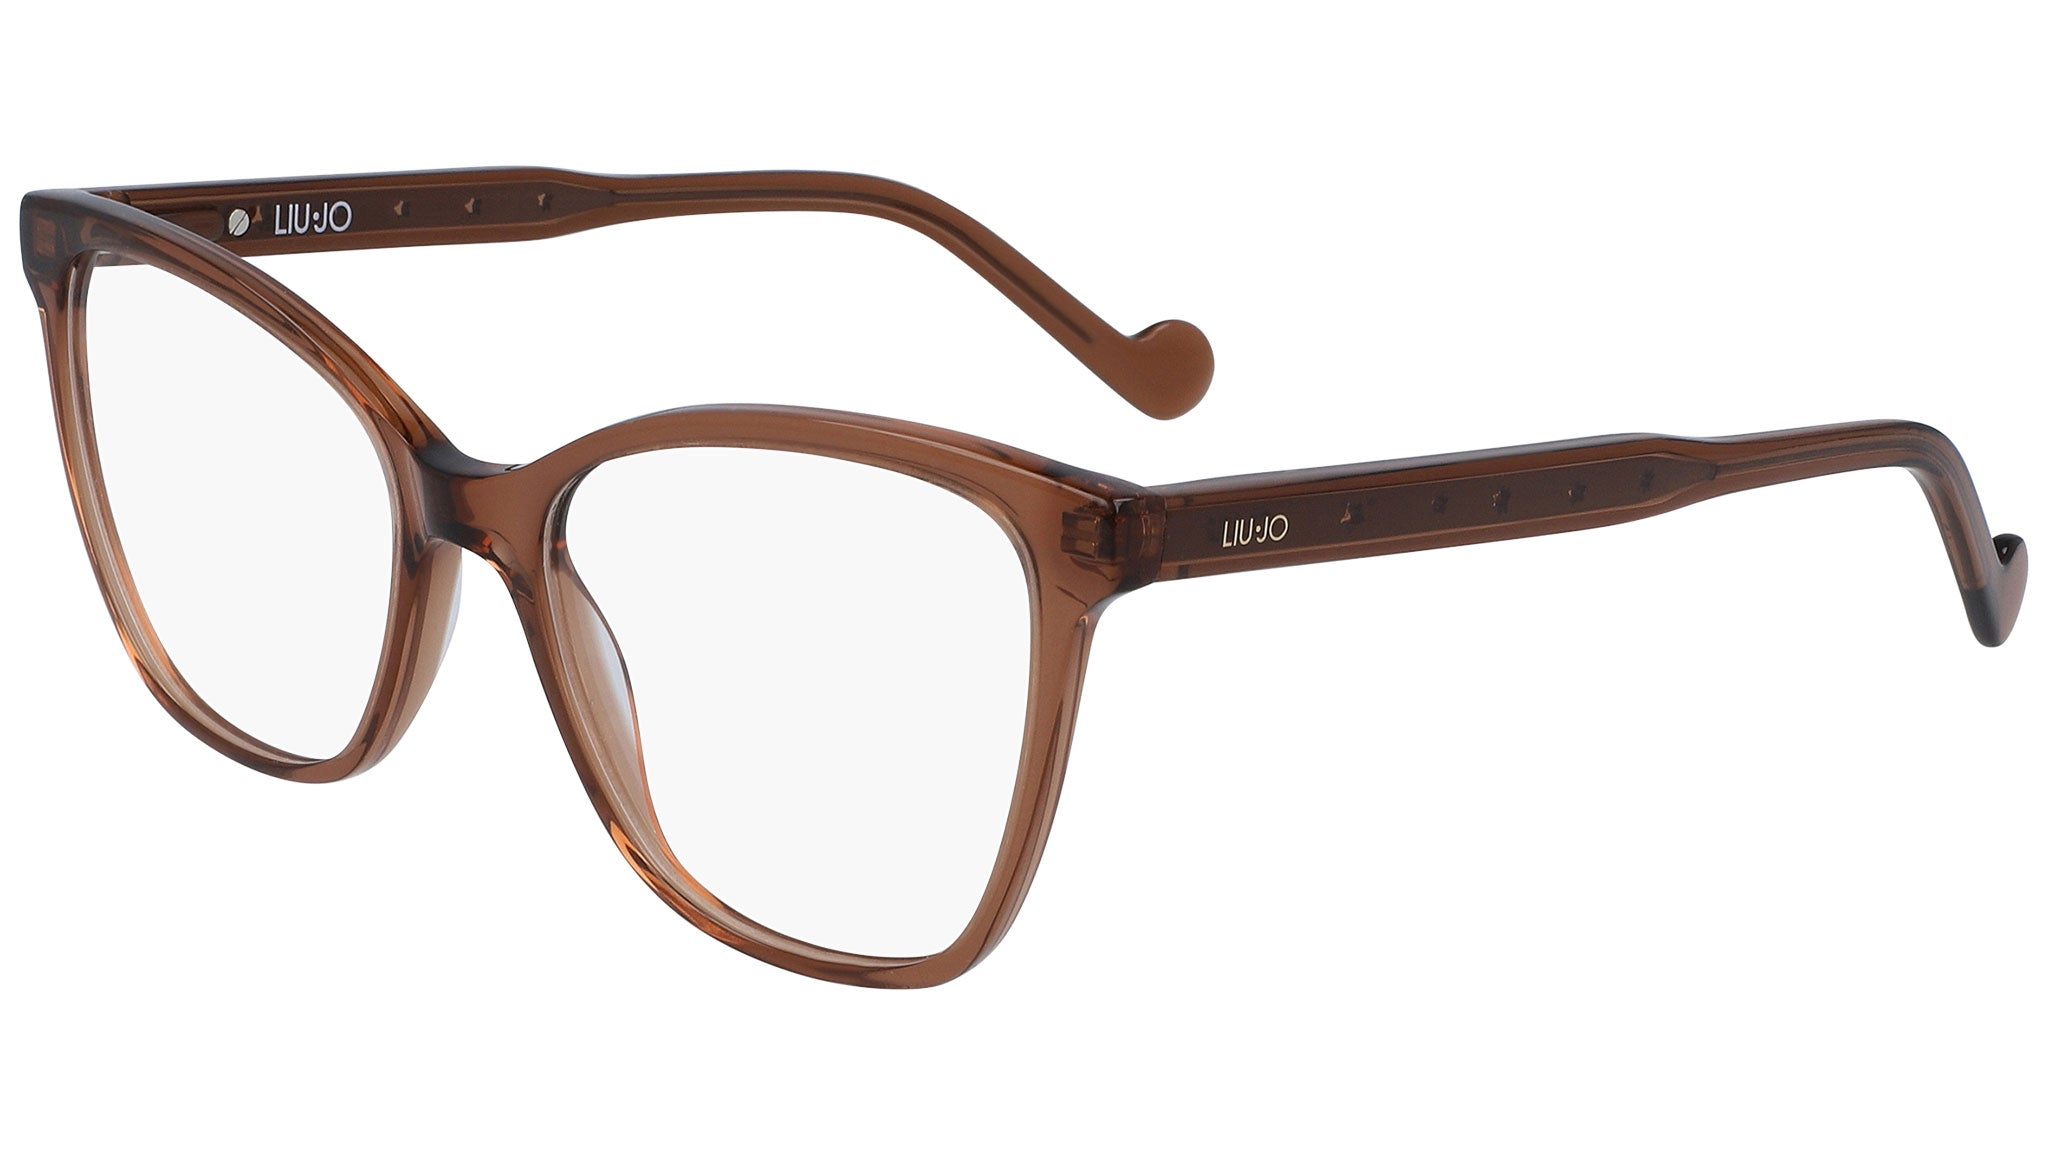 LJ2723 210 transparent brown